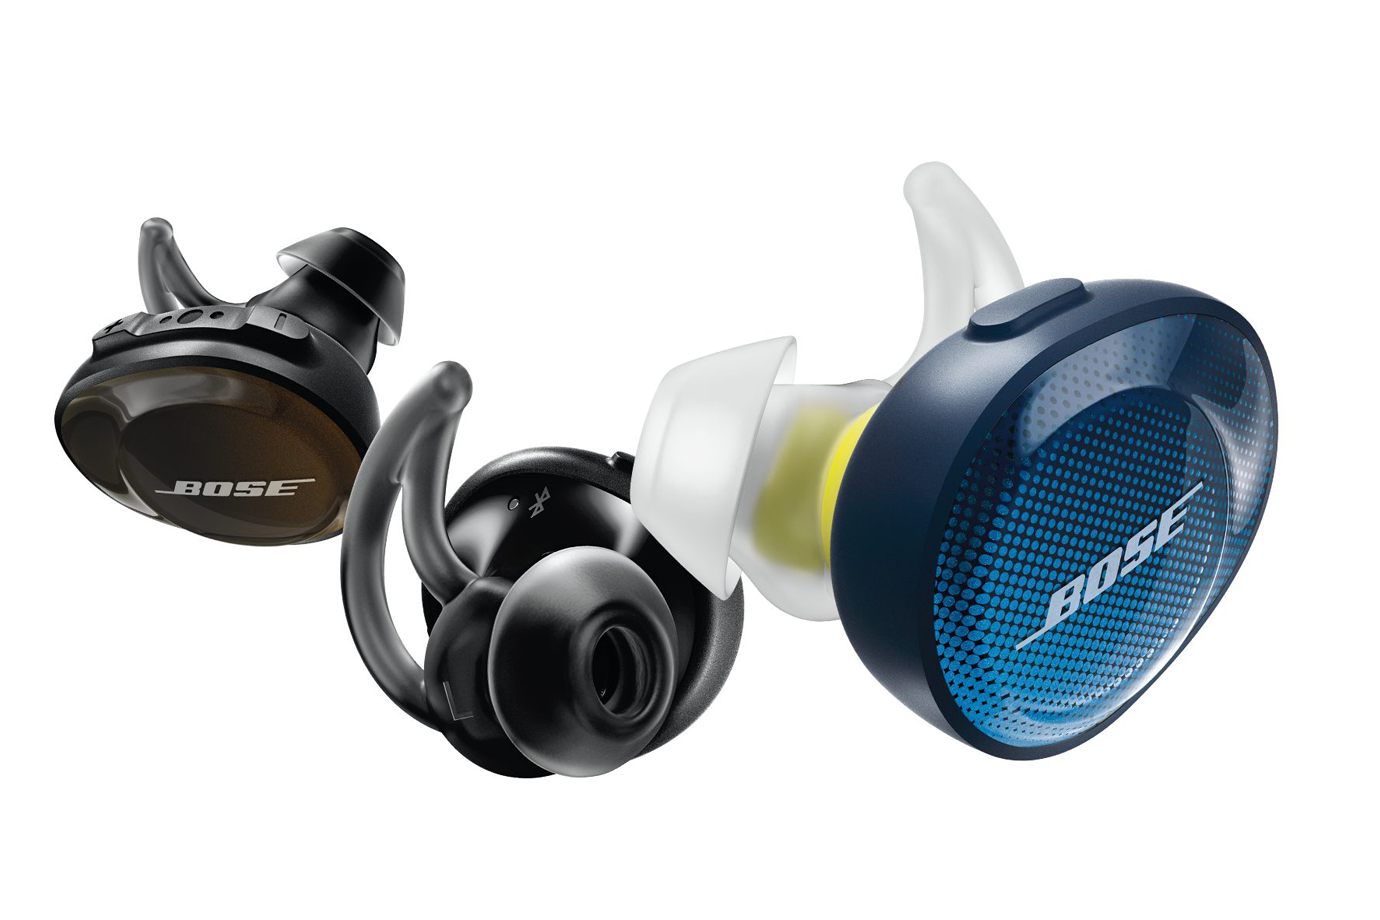 The 5 Best Truly Wireless Earbuds On The Market Right Now Headphones Wireless Earbuds Best In Ear Headphones